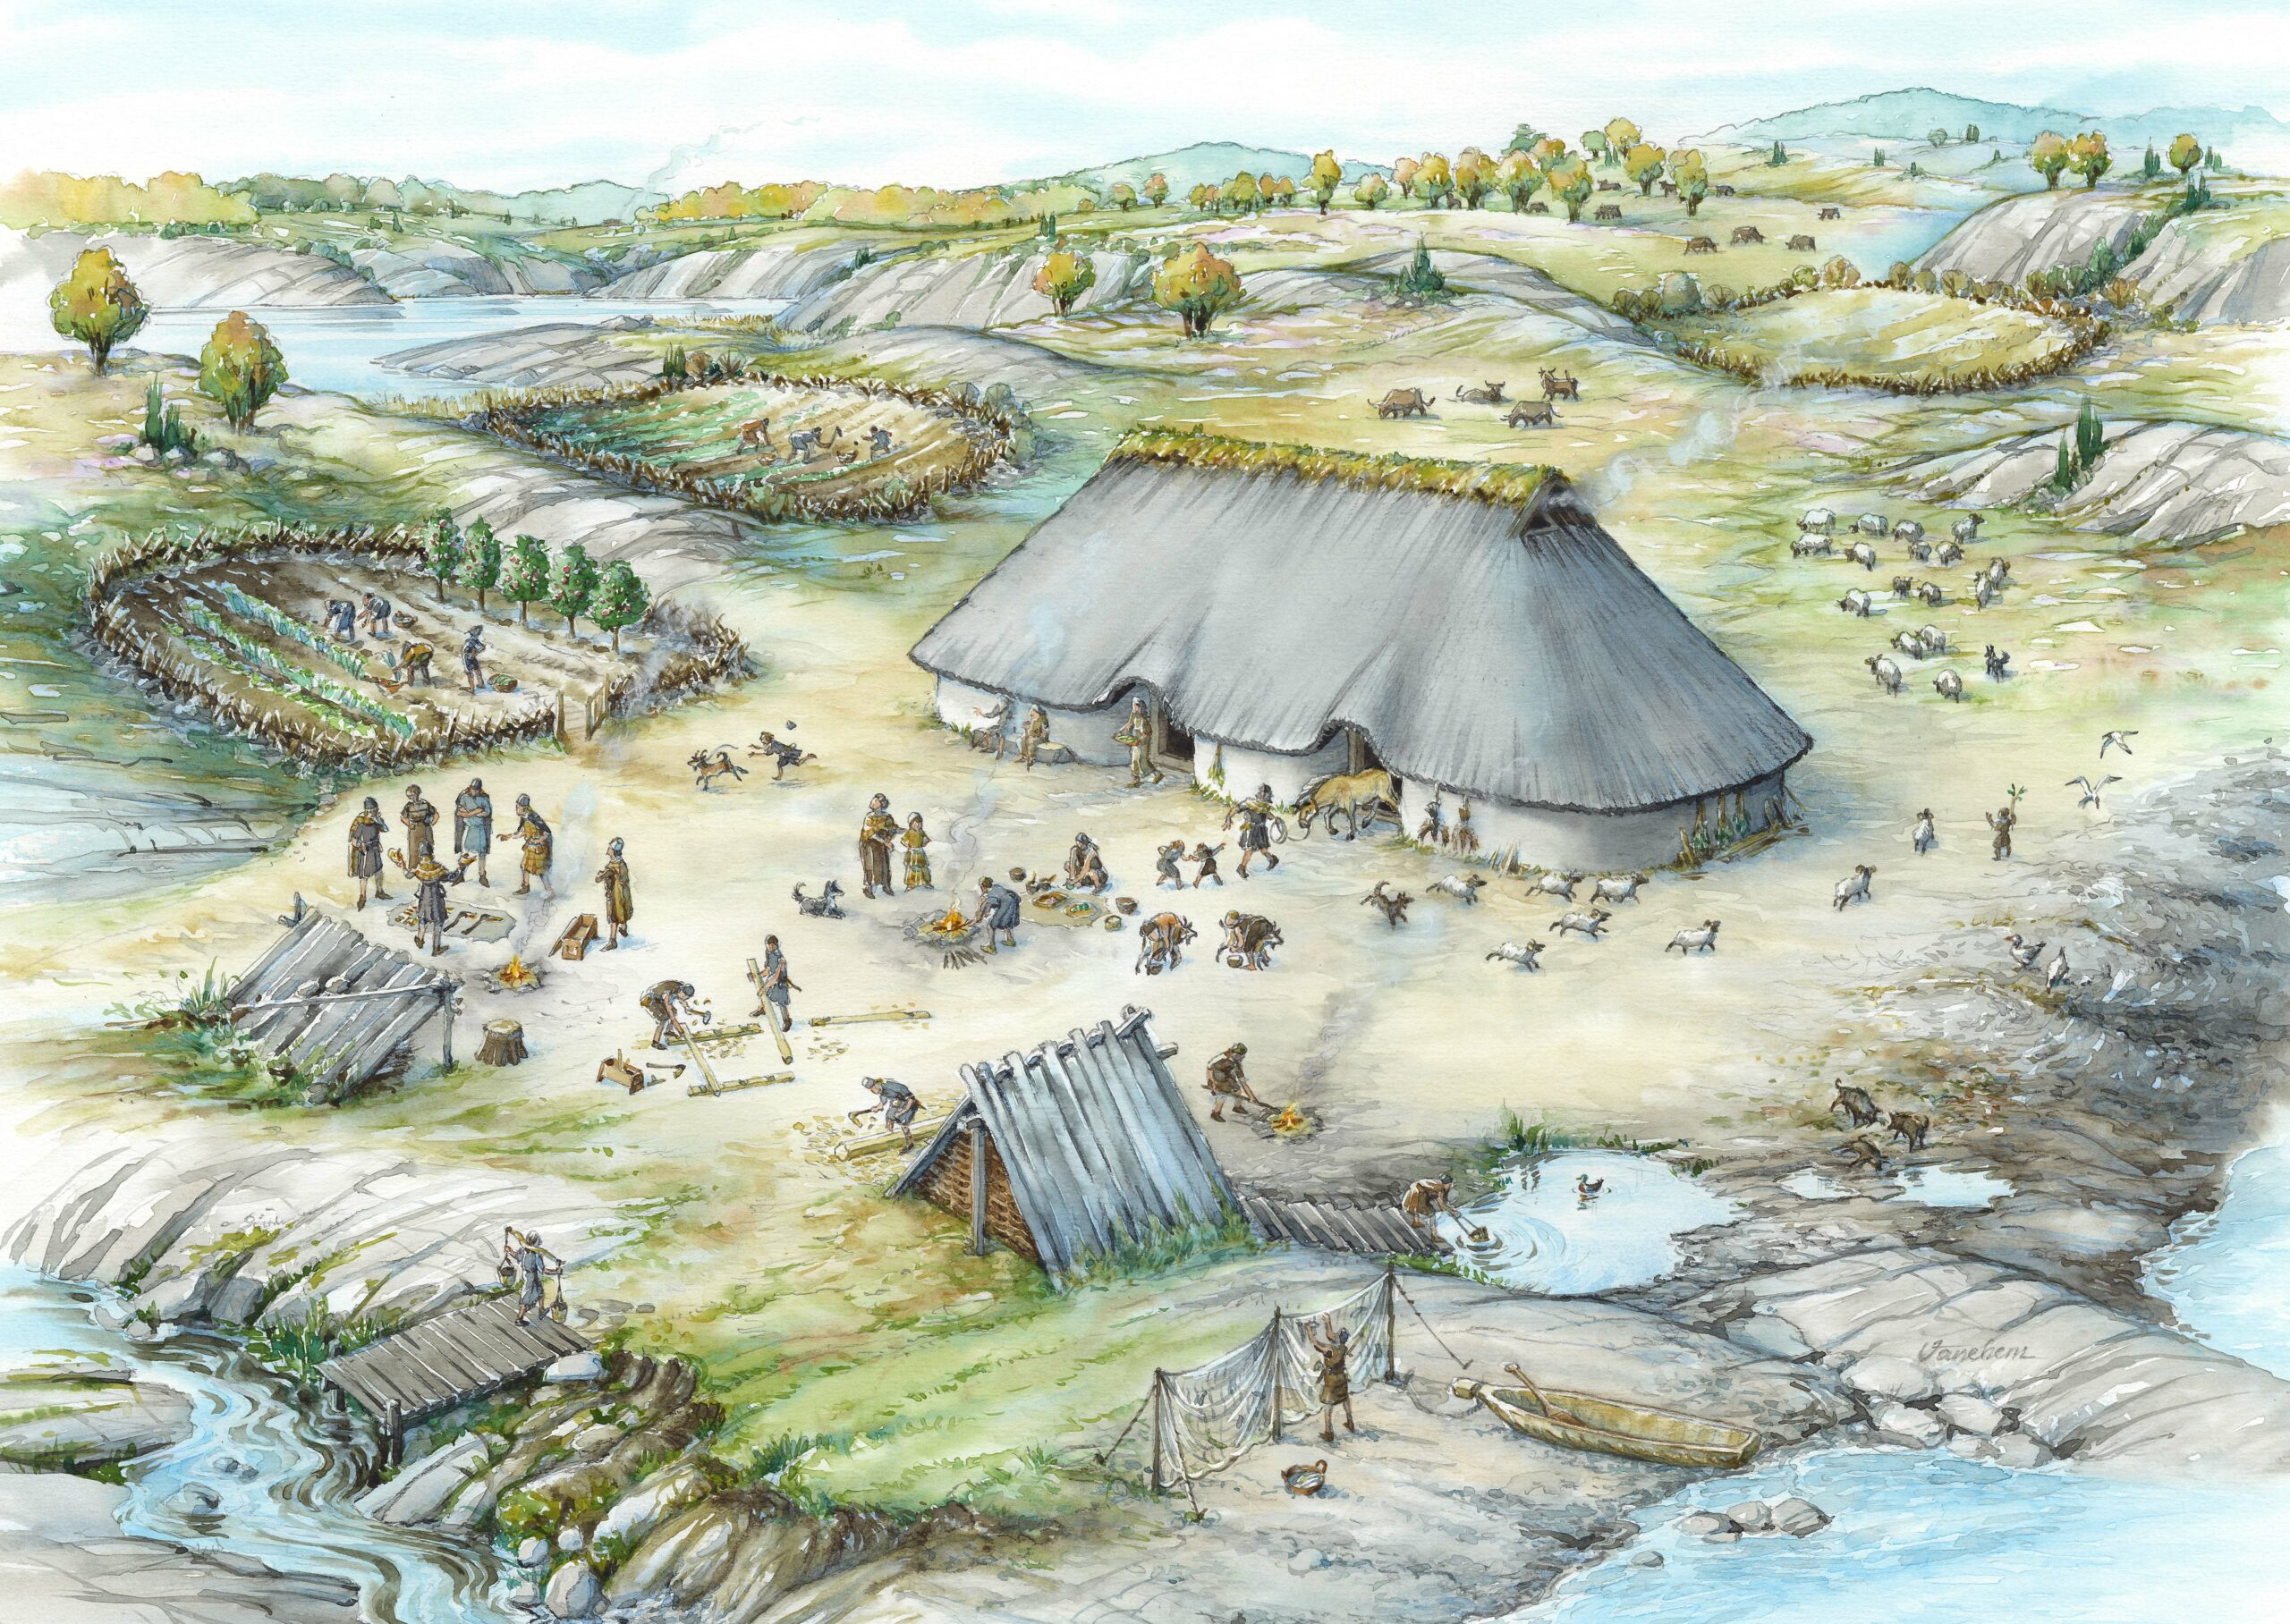 Bronze Age settlement in the south of Norway (Client: Aust Agder Museum og Arkiv in Arendal, Norway).